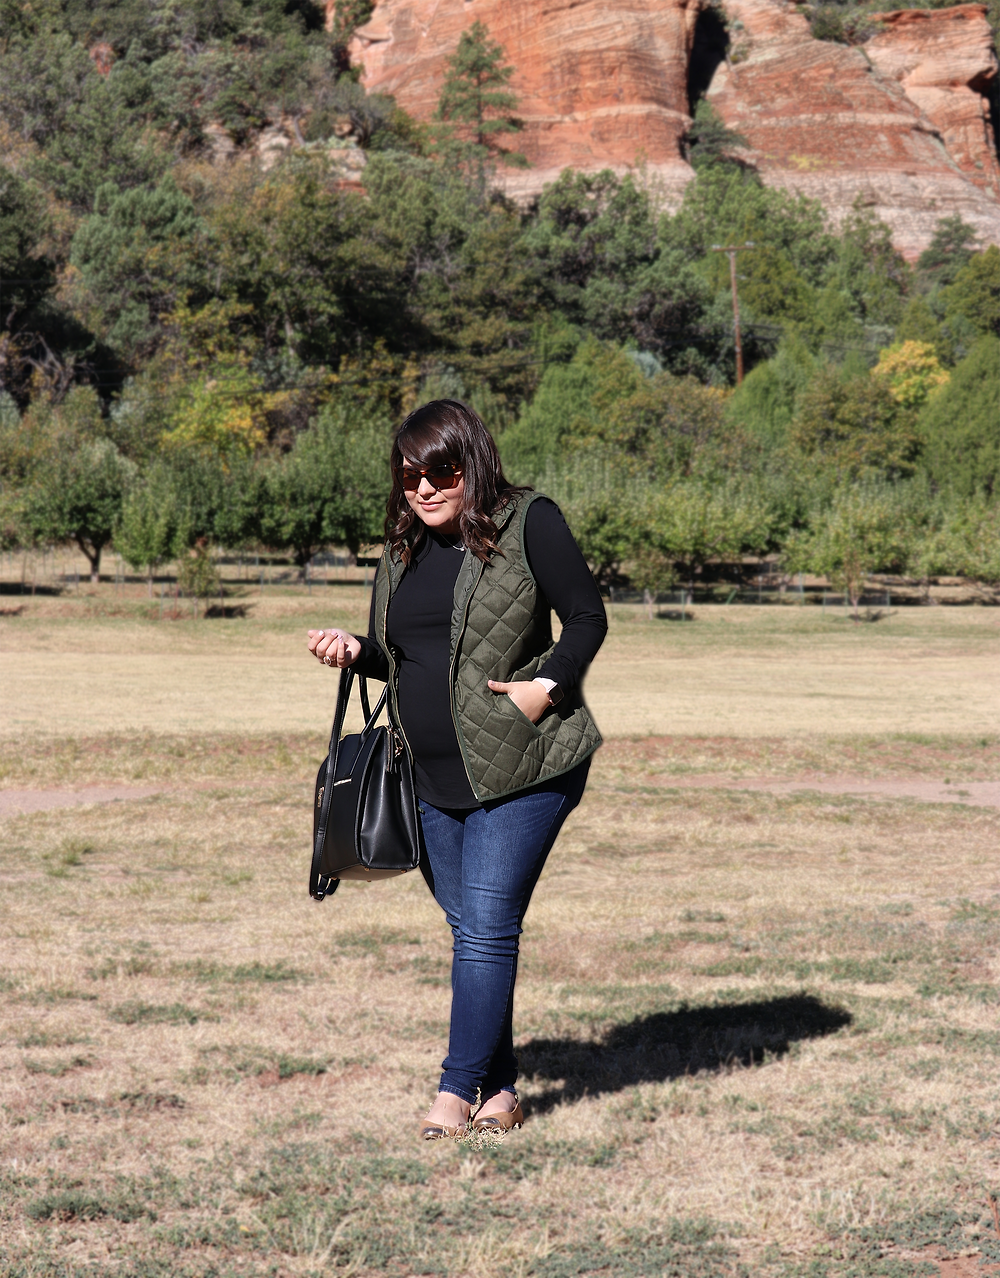 Sedona Trip - Maternity Style - Pregnancy Outfit - Fall Maternity Outfit - lifestyle blogger - the sweetest thing blog - blogger - arizona blogger